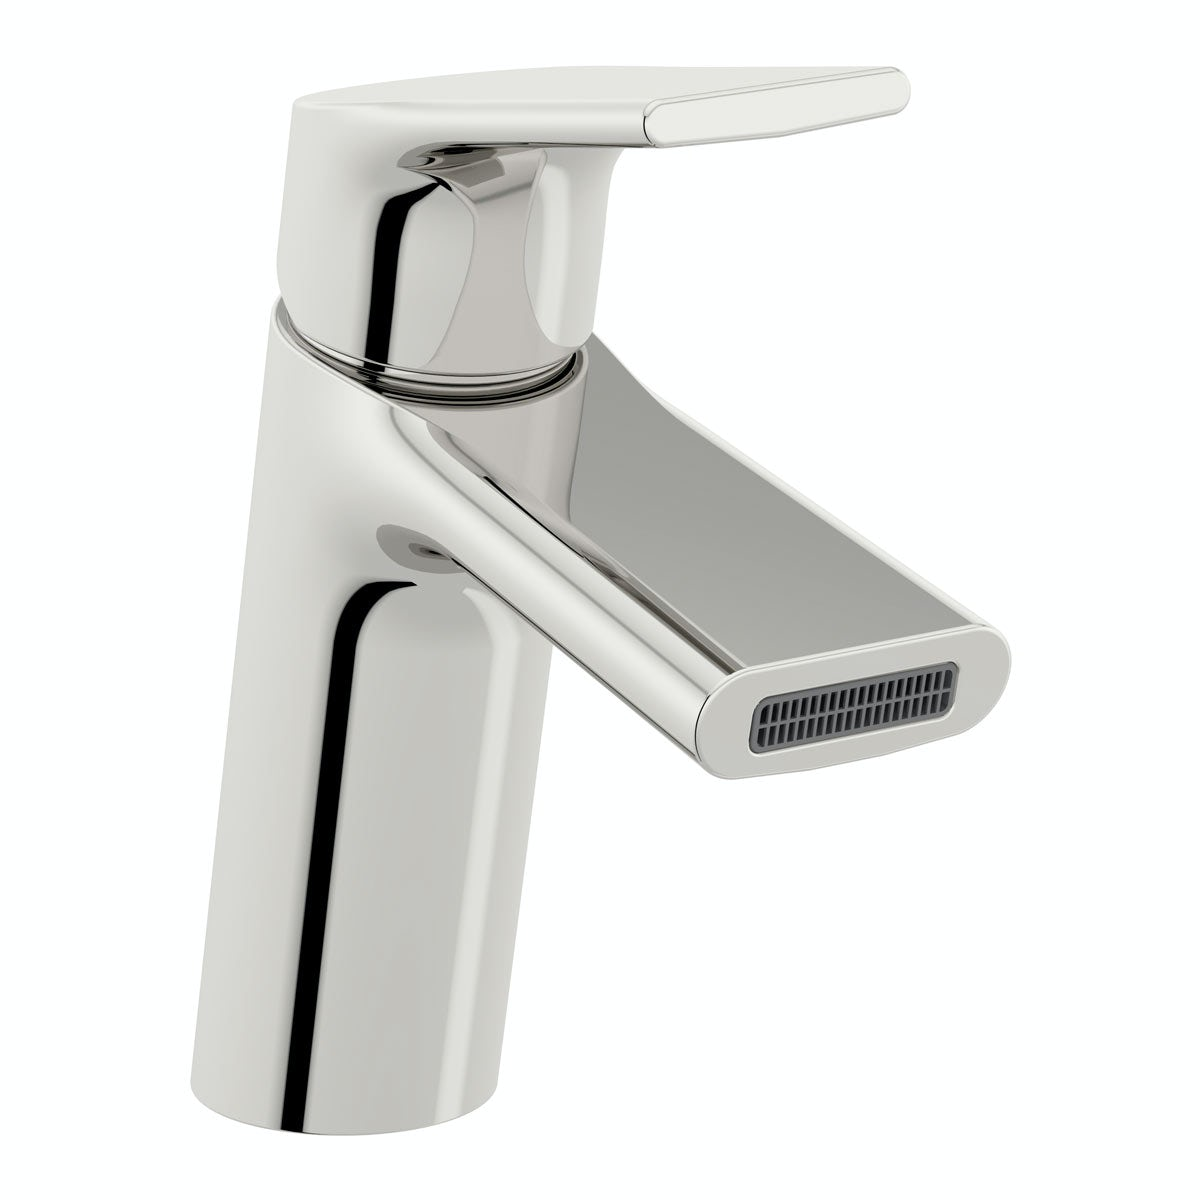 Purity Basin Mixer